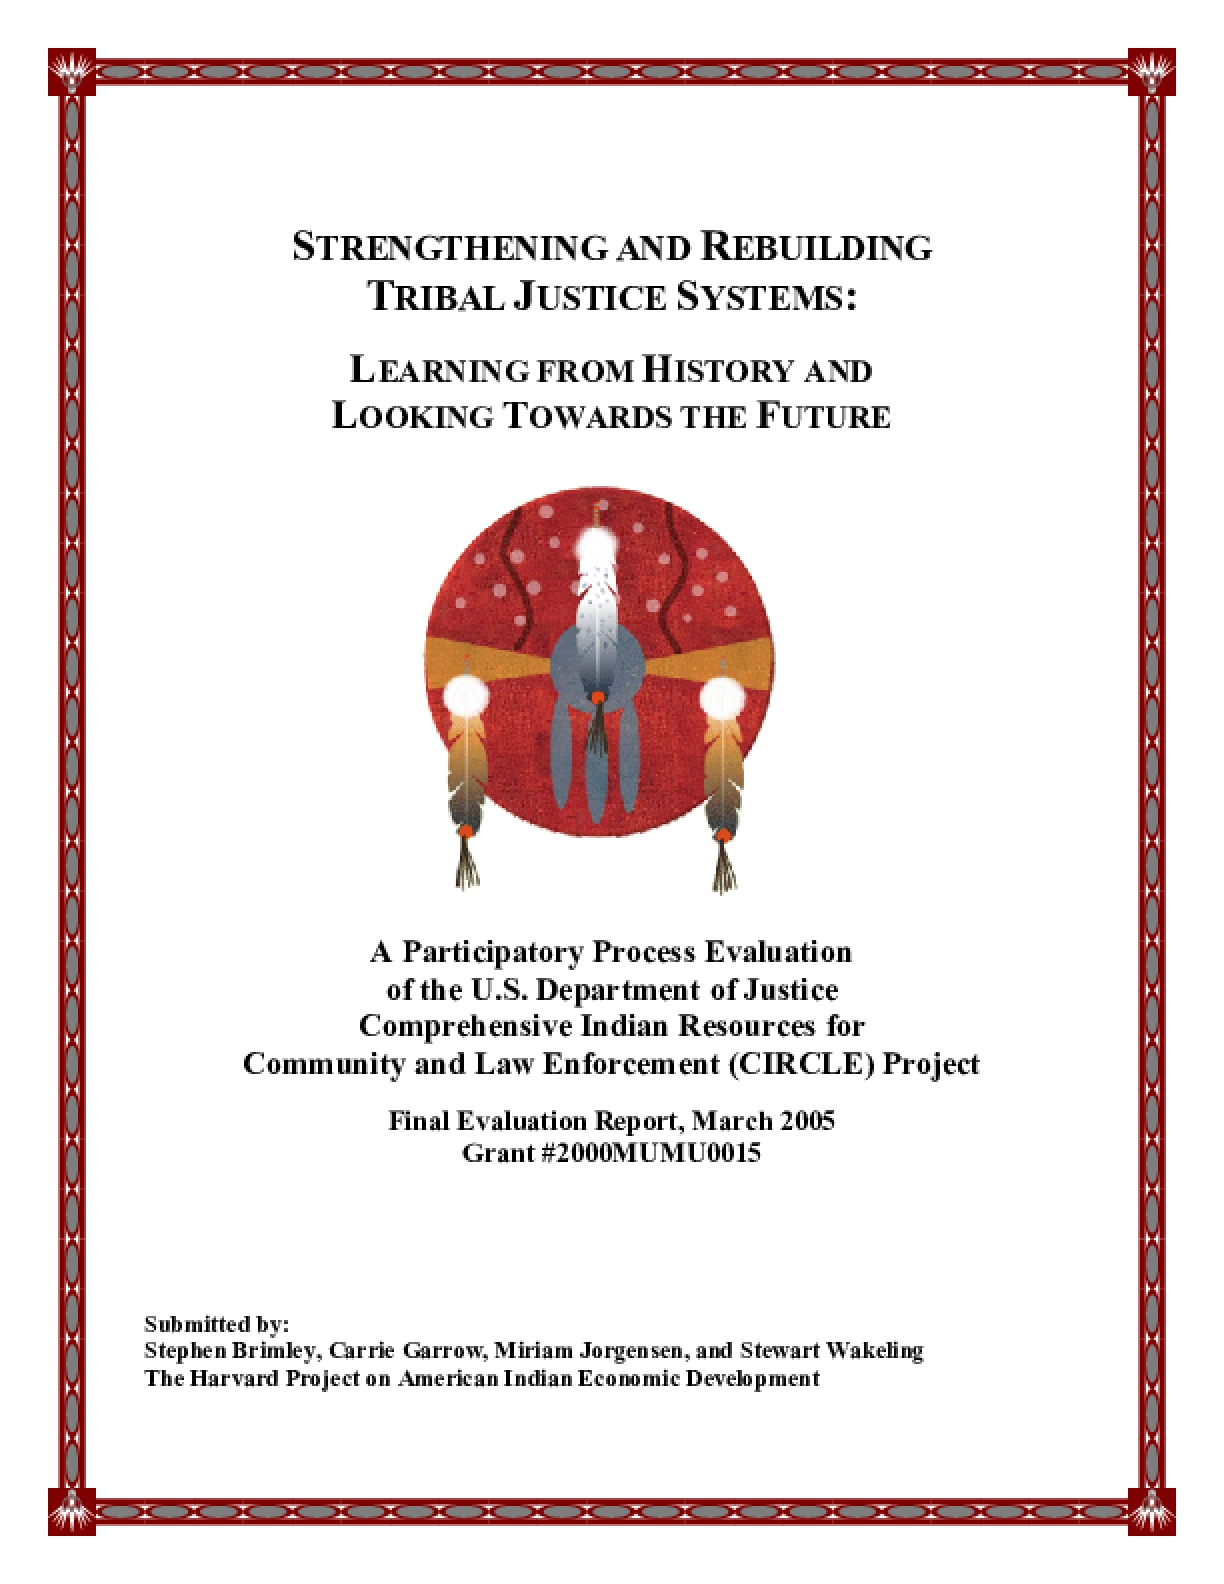 Strengthening and Rebuilding Tribal Justice Systems: Learning From History And Looking Towards the Future - A Participatory Process Evaluation of the U.S. Department of Justice Comprehensive Indian Resources for Community and Law Enforcement (CIRCLE) Project